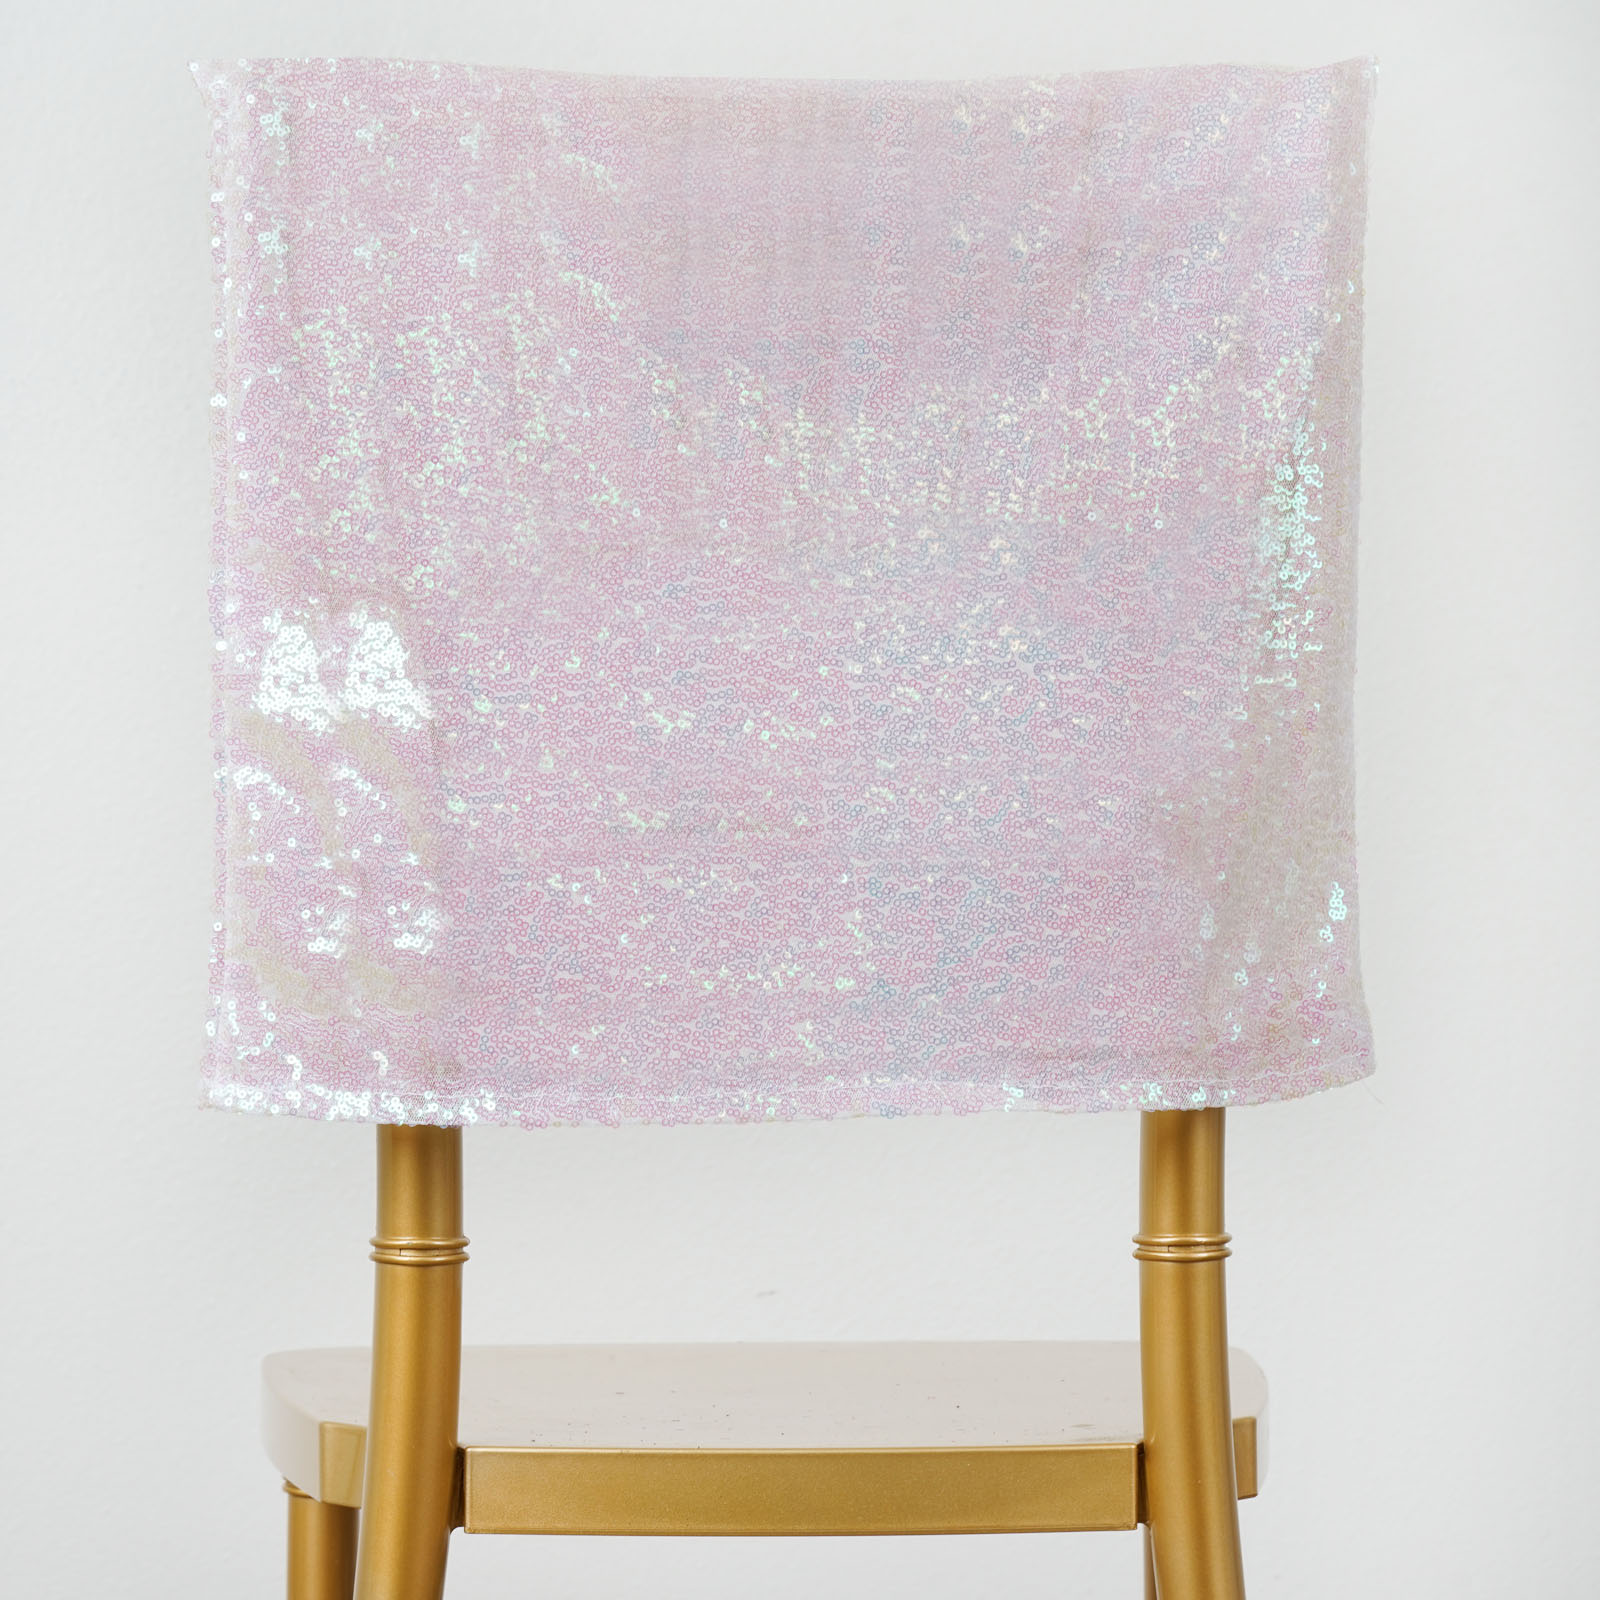 100 pcs SEQUIN CHAIR COVERS SQUARE TOP CAPS Party Wedding